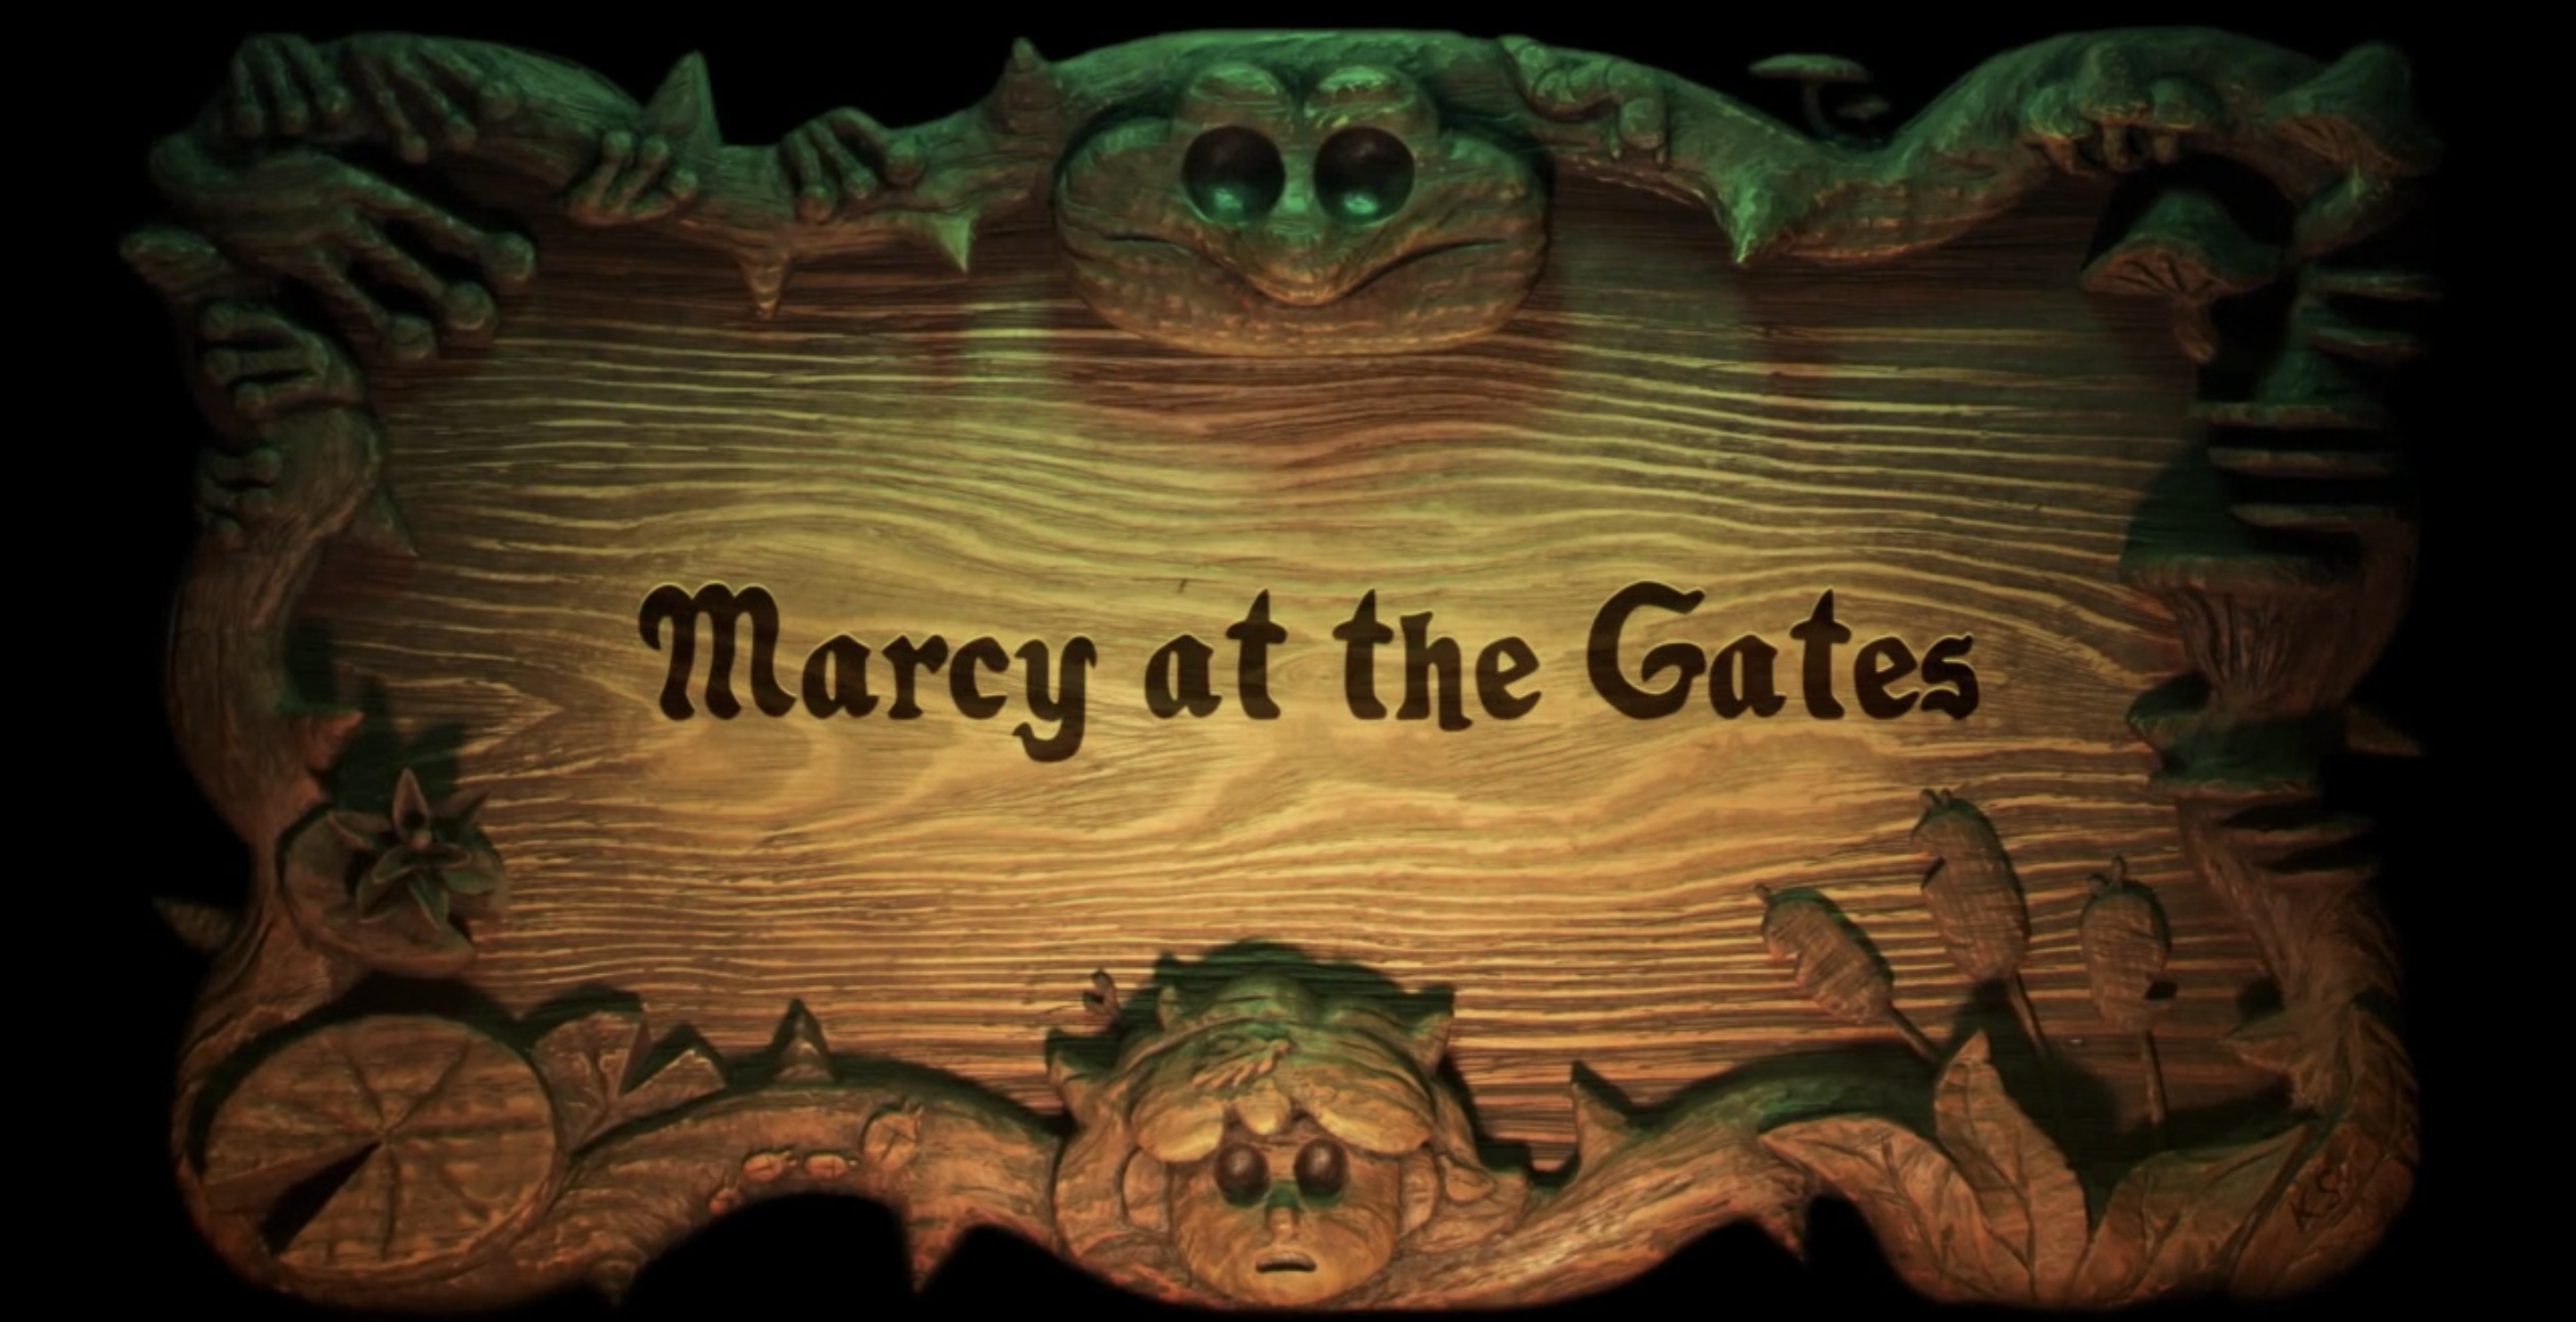 Marcy at the Gates